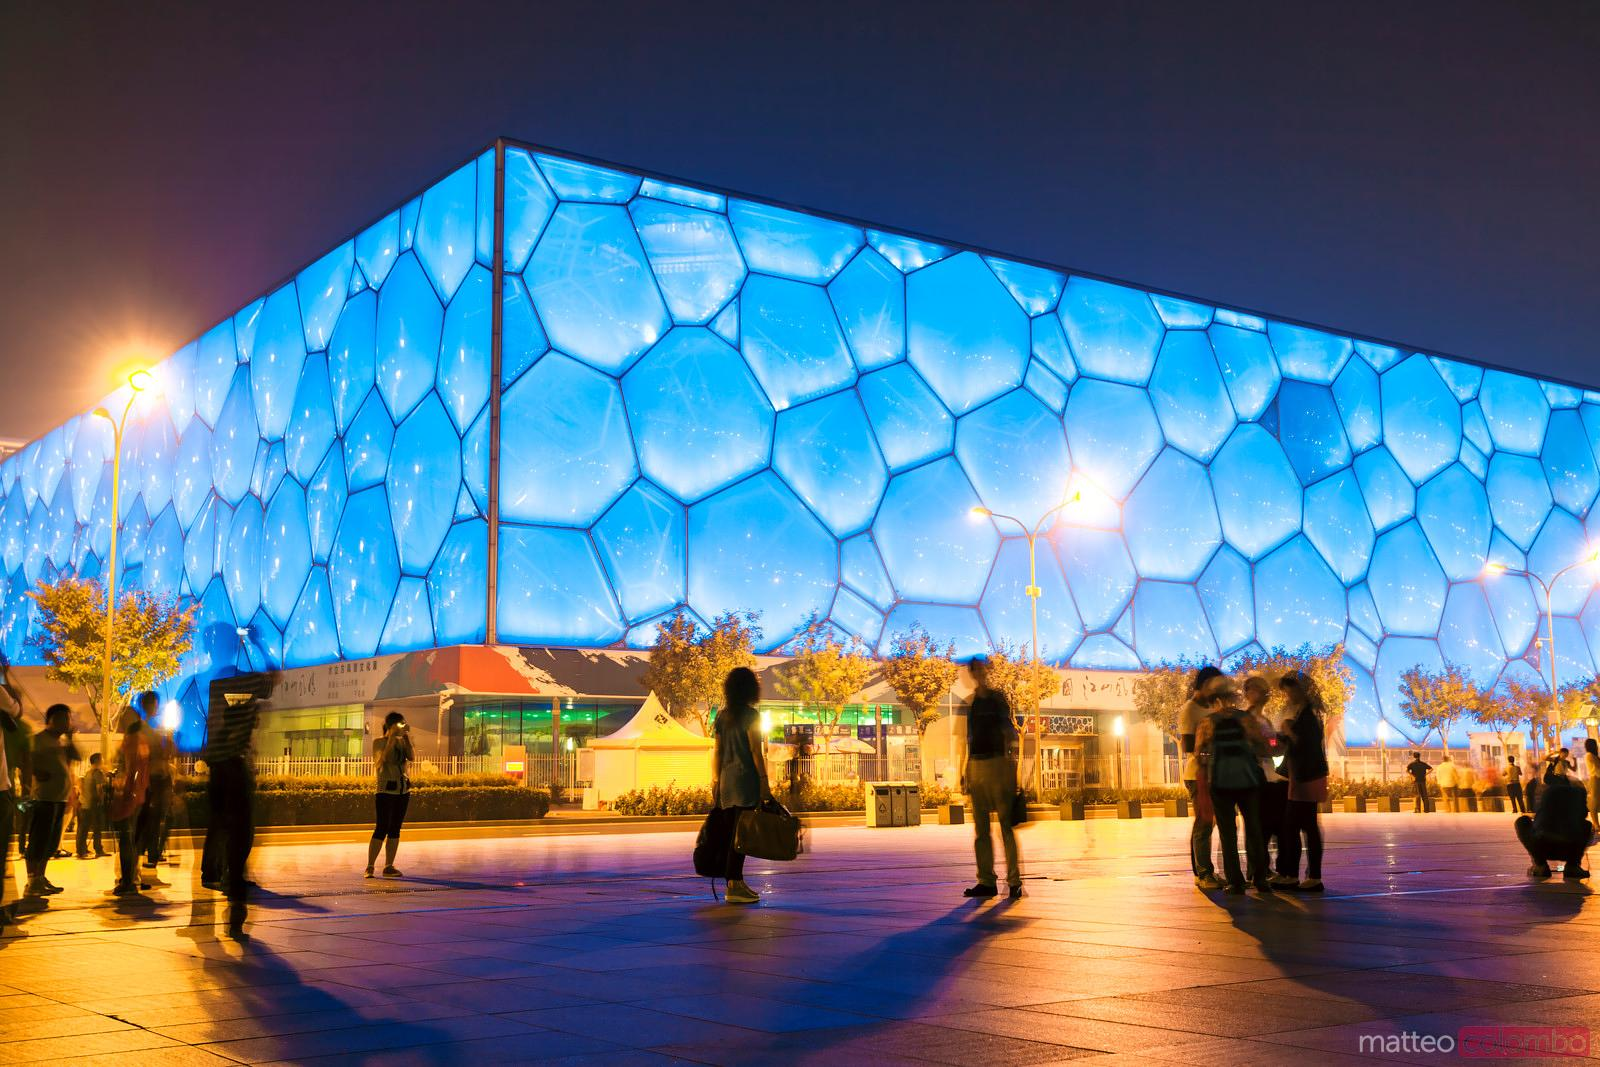 National acquatics olympic center in Beijing